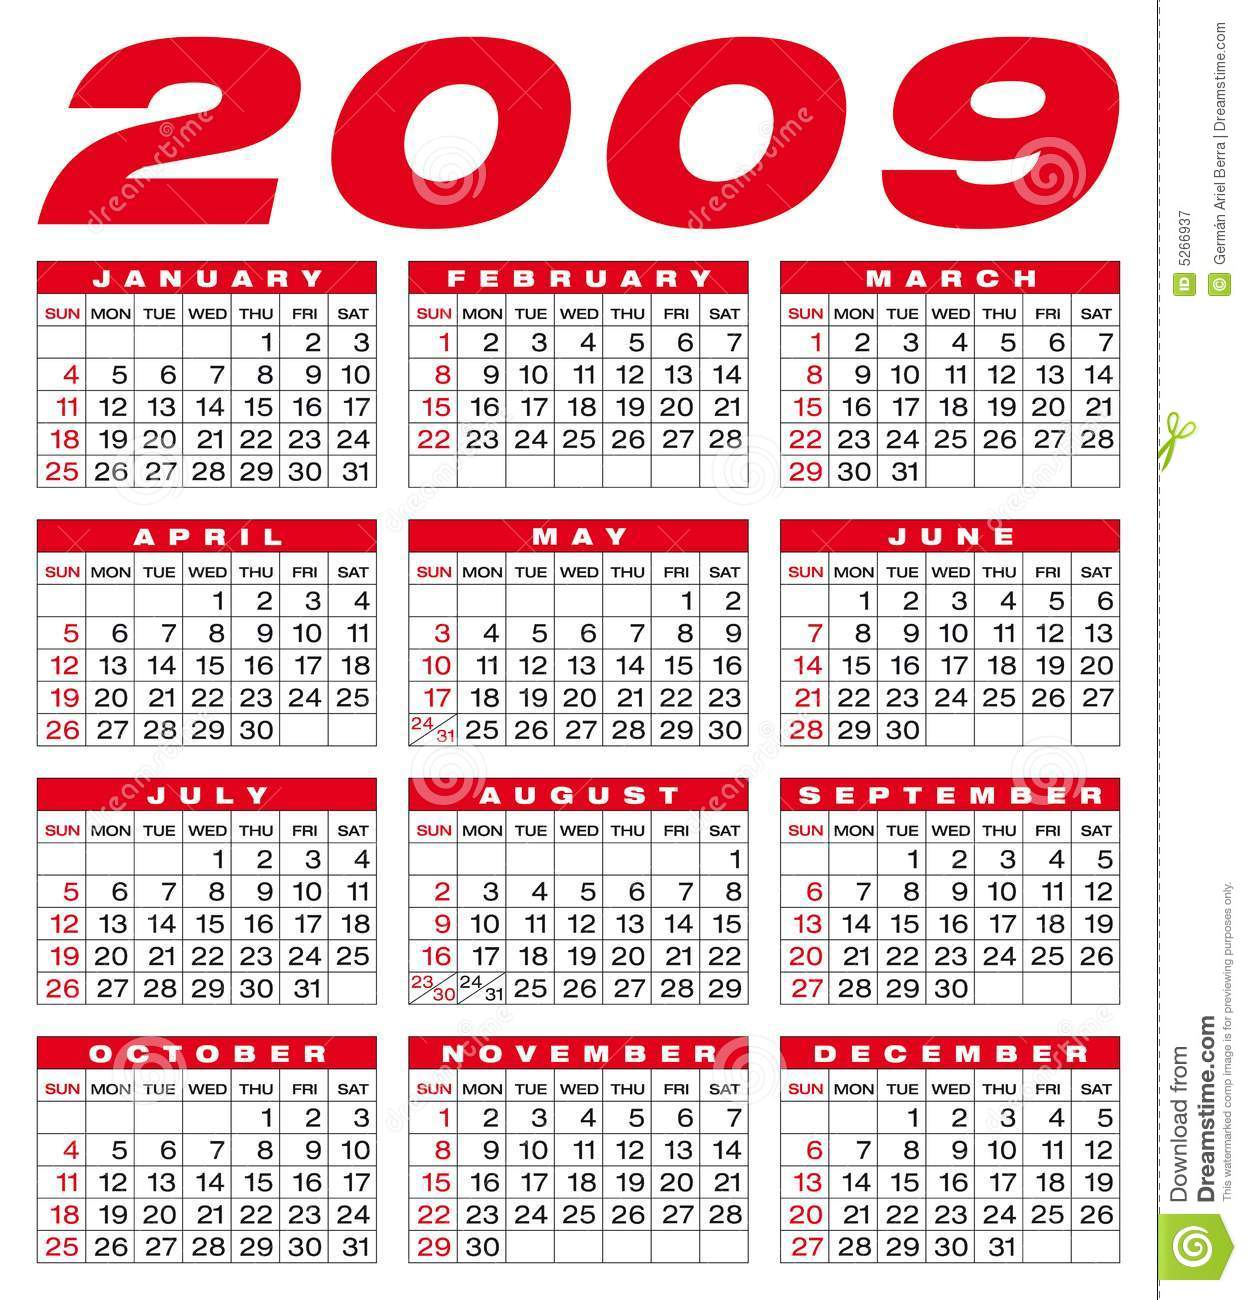 Calendar 2009 Royalty Free Stock Photography - Image: 5266937